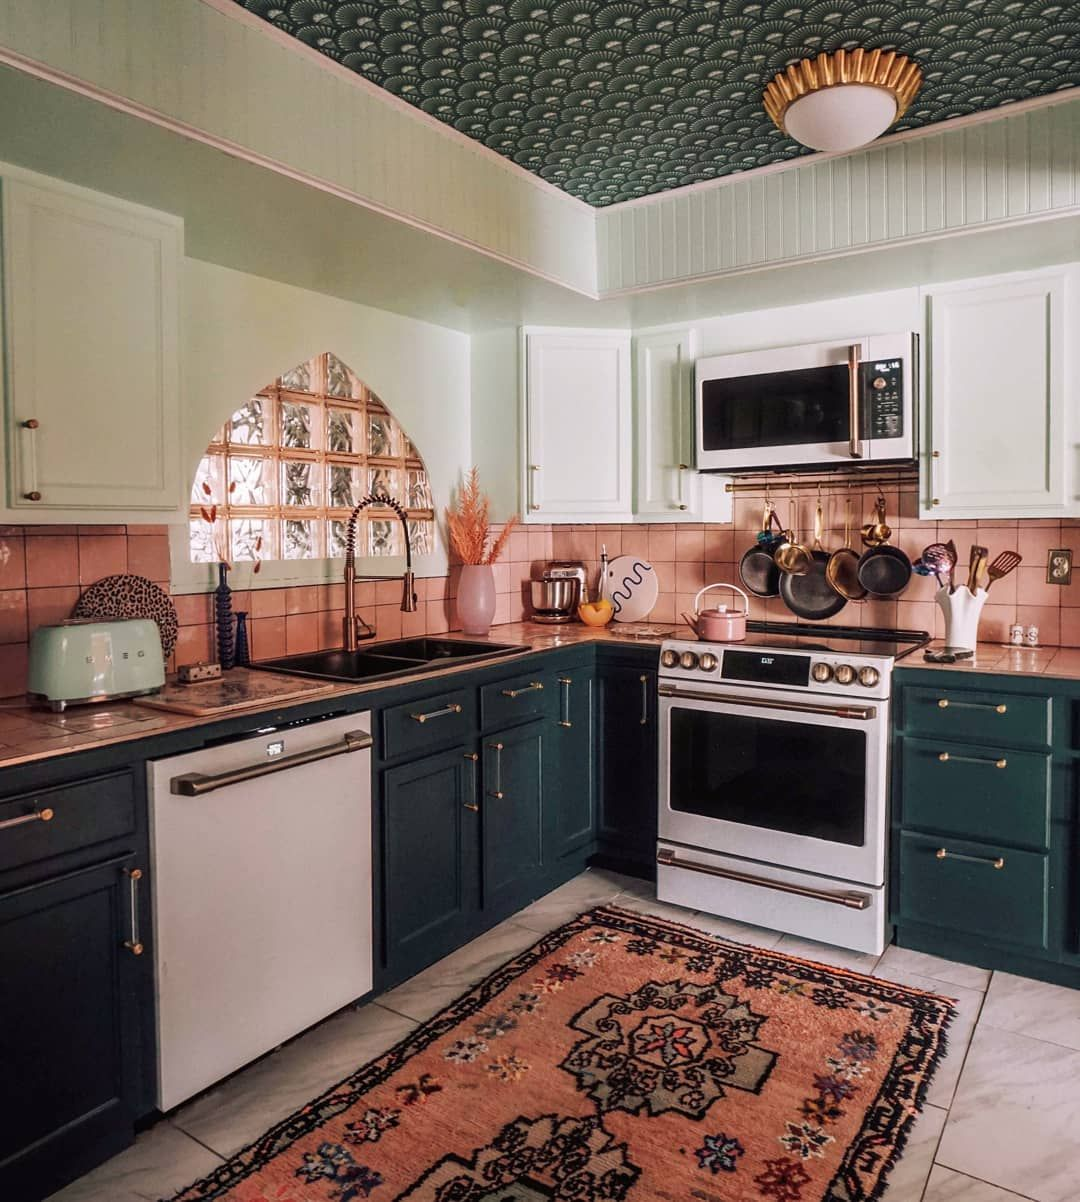 Stylish And Clean This Is What We Call Our Dream Kitchen Inmodinspo Arianna Danielson In 2020 Clean Kitchen Kitchen Kitchen Dining